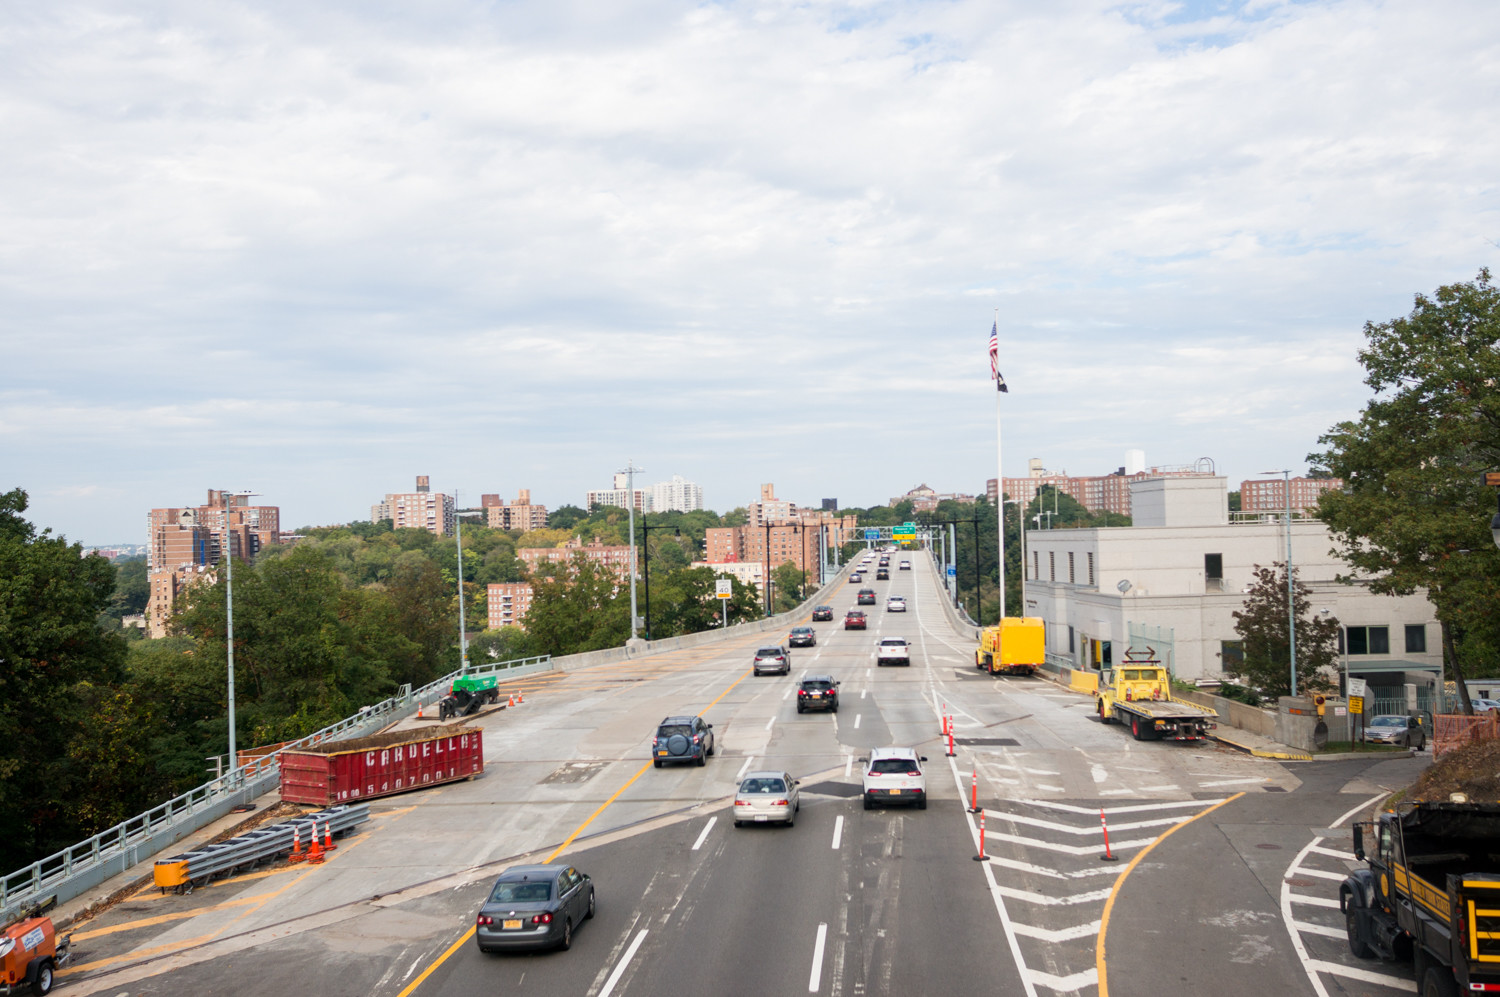 One lane at a time on the northbound and southbound levels will close as rehabilitation work is completed on the Henry Hudson Bridge, connecting upper Manhattan and the Bronx.